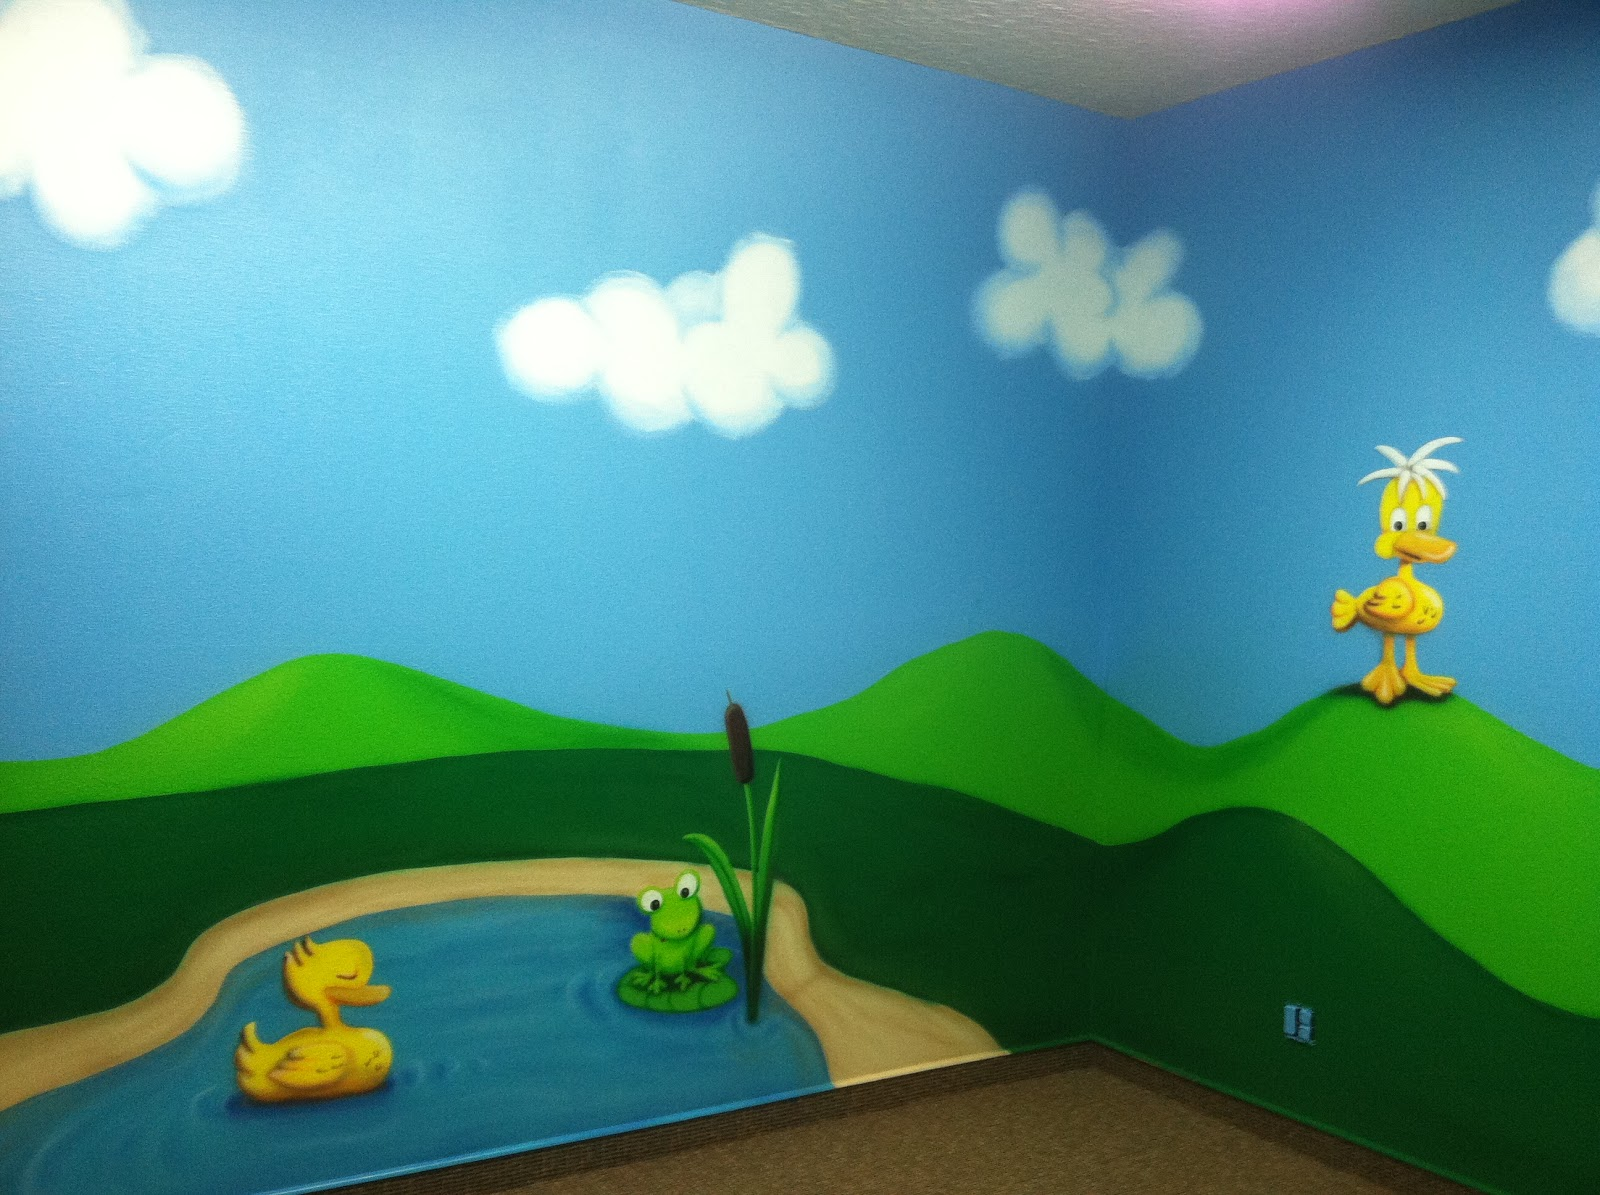 Growing pains at radiant church equals more mural work for Duck pond mural